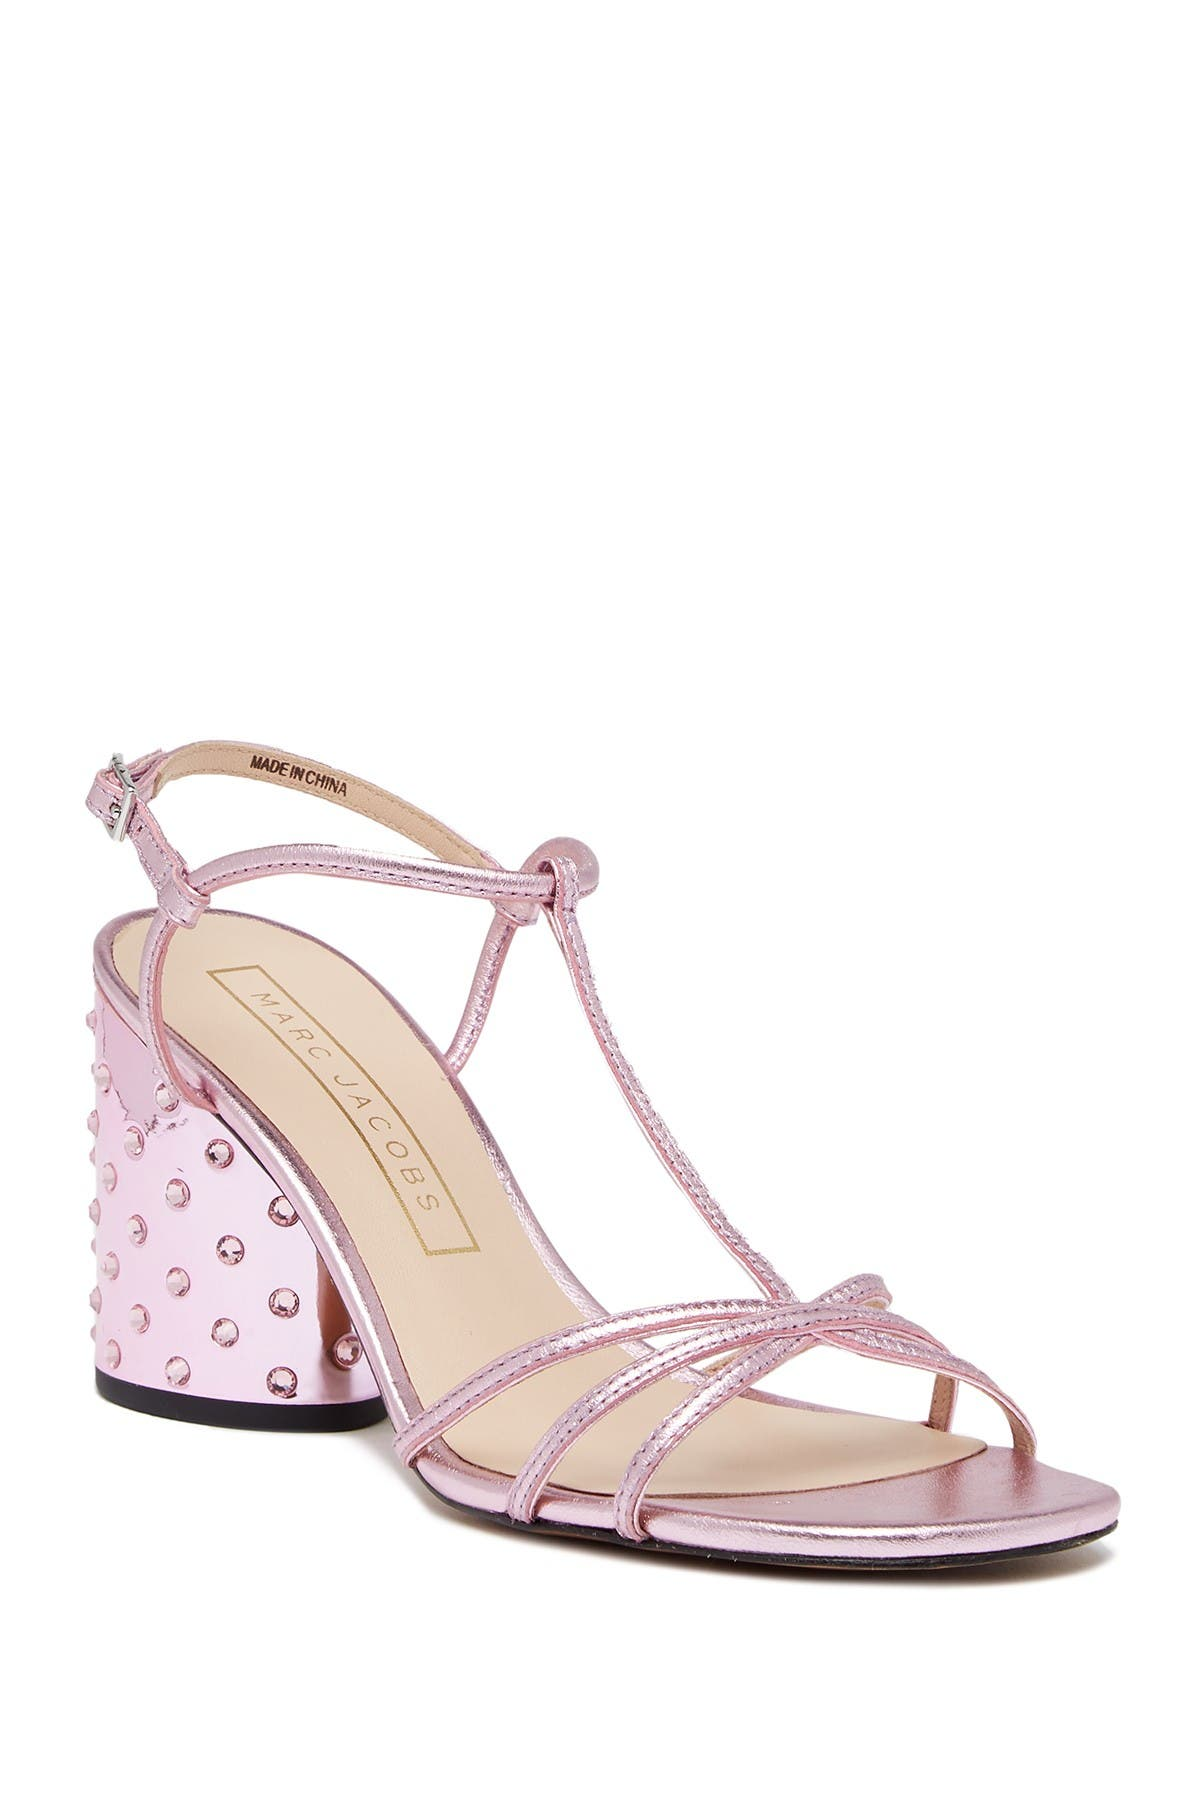 Image of Marc Jacobs Sheena Crystal Embellished Block Heel Sandal